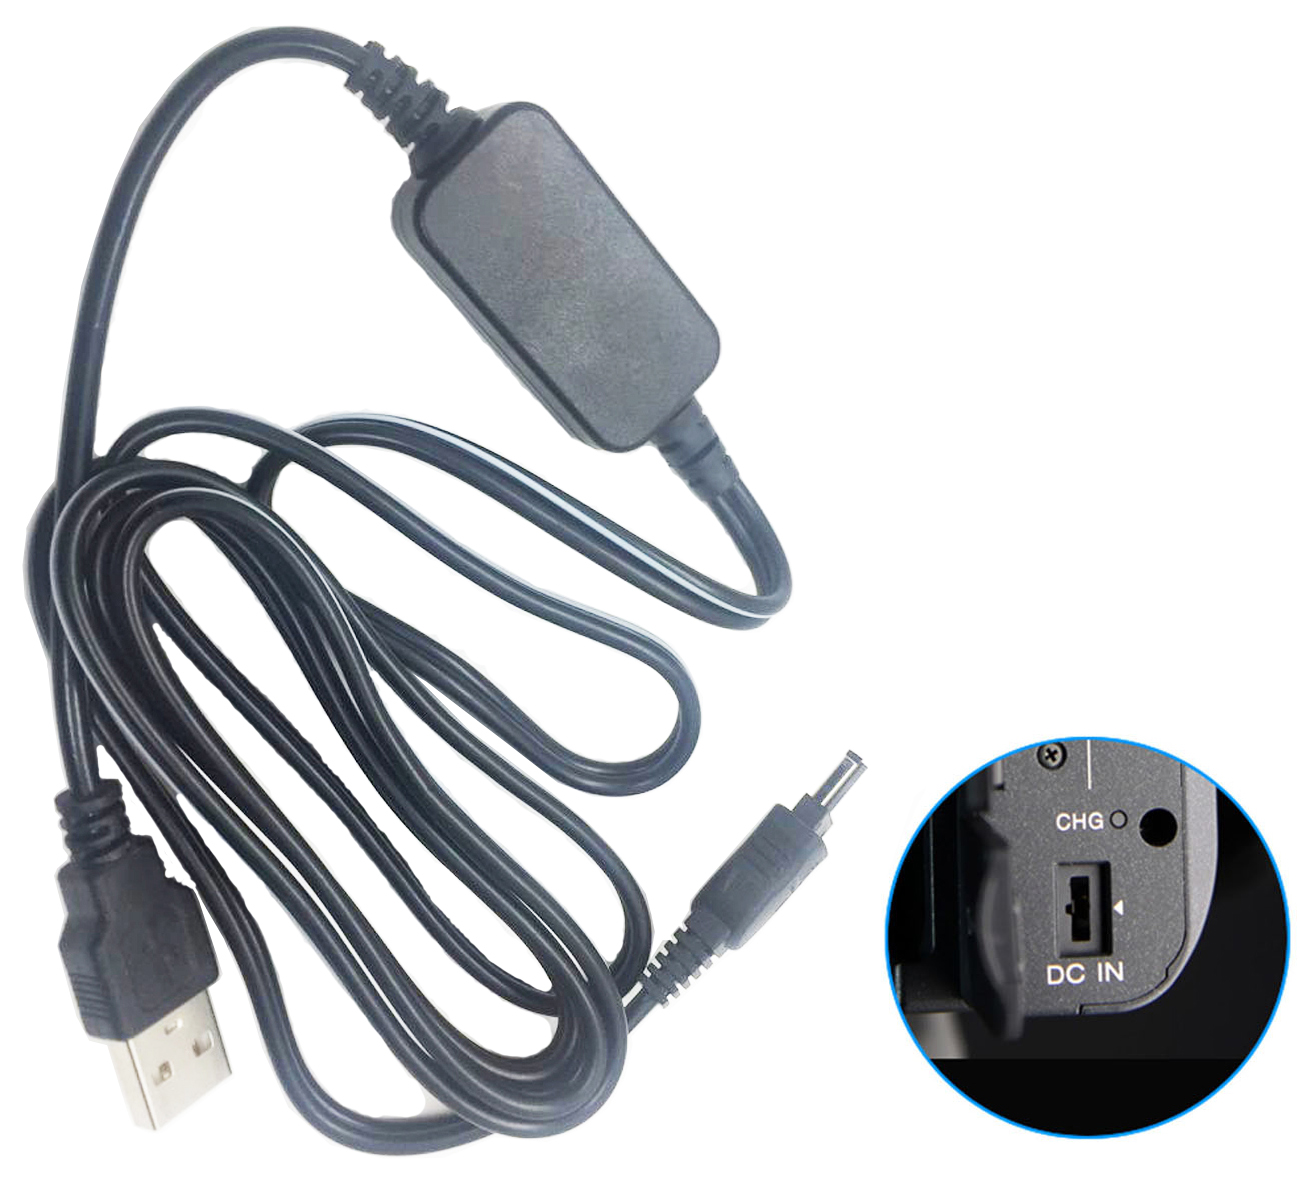 LCD USB Battery Charger for Sony HVR-A1 HDR-HC1 HVR-A1U HDR-SR1 HDR-UX1 Handycam Camcorder